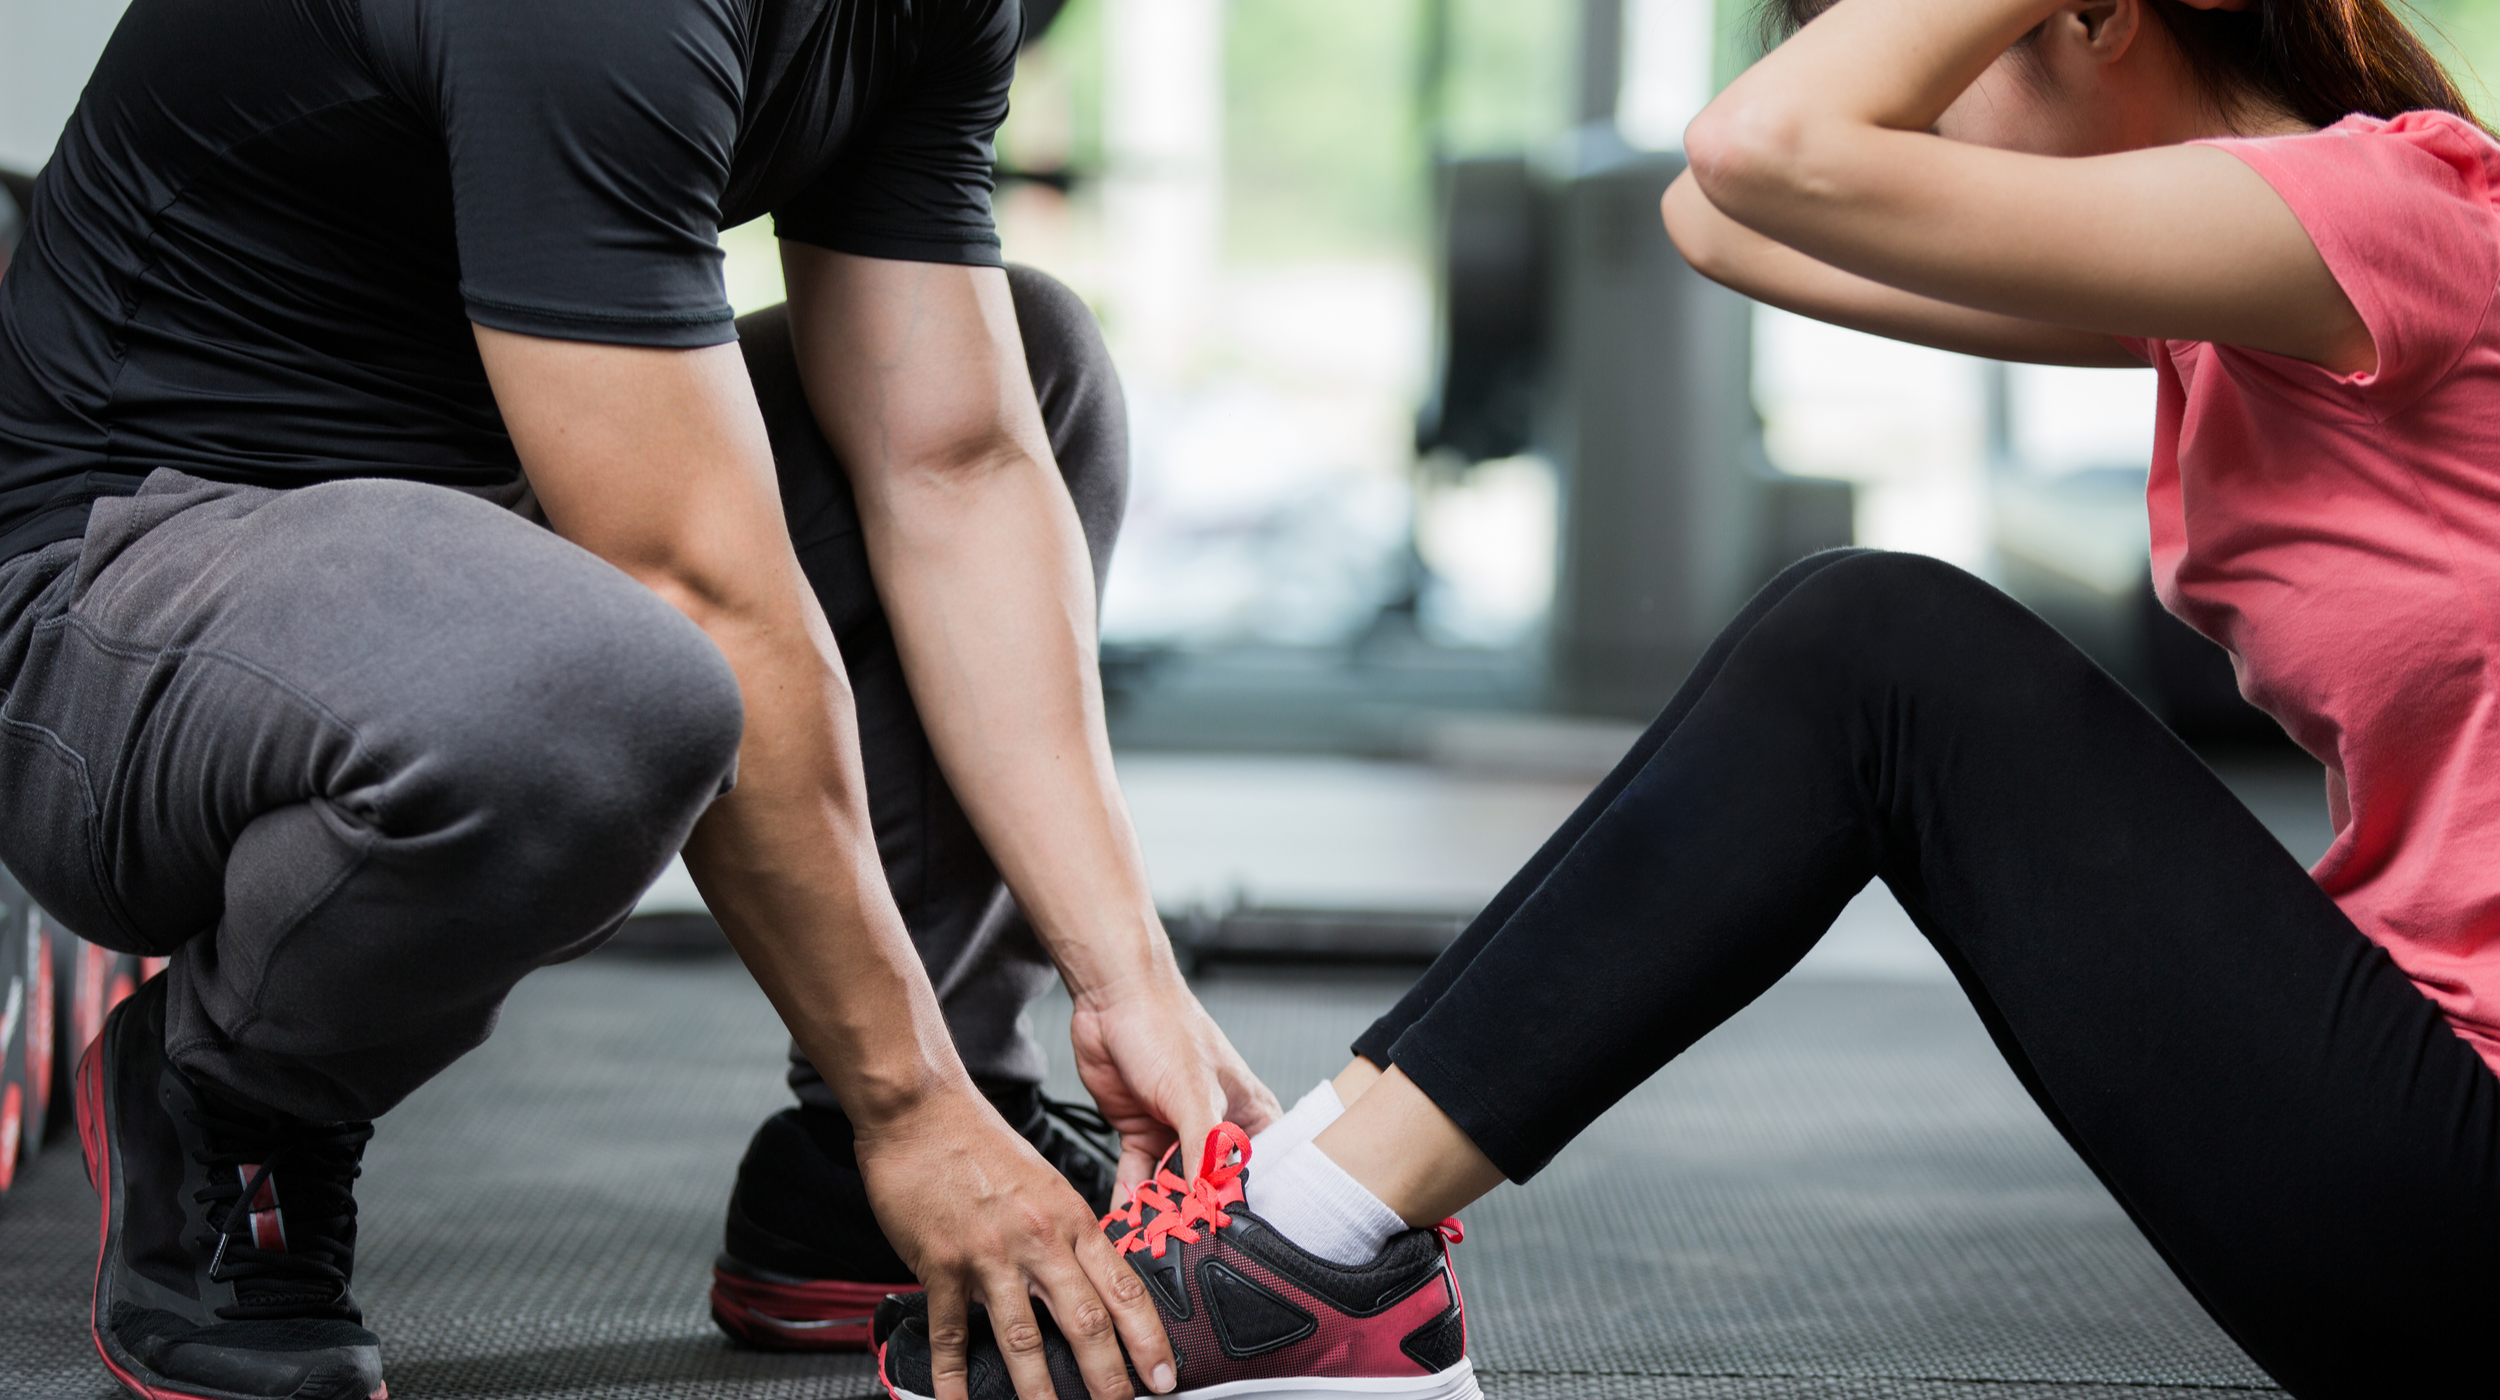 Should I Hire a Personal Trainer if I Want to Lose Weight?